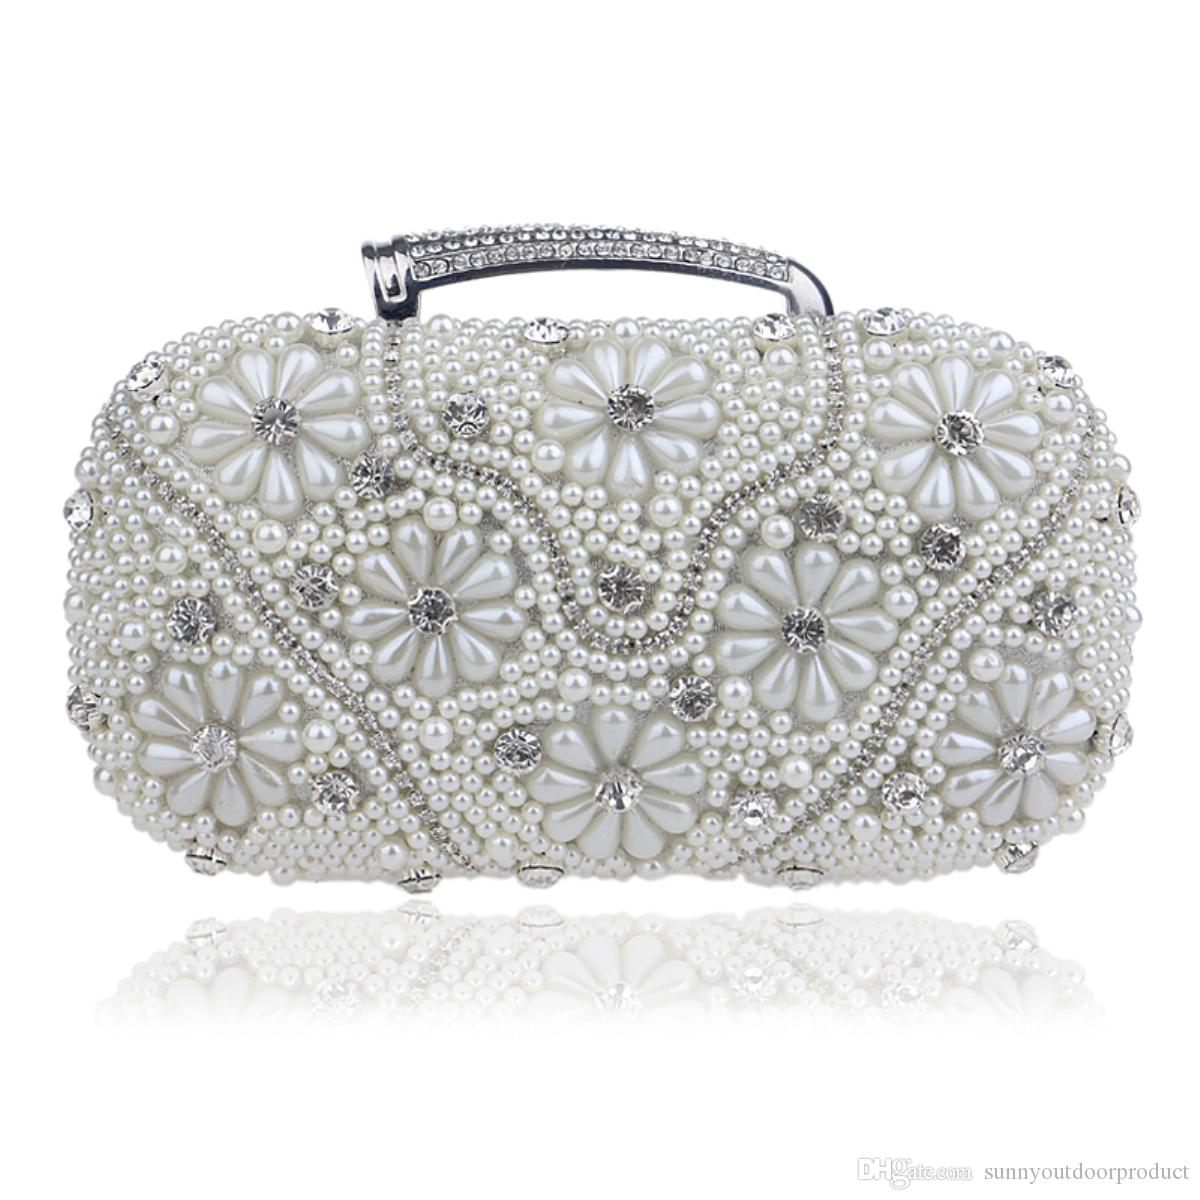 New Fashion Pearl Flower Beaded Rhinestones Women Evening Bag With Handle Lady  Clutch Shoulder Bag Chain Handbag Purse For Wedding Party Designer Bags ... dc0934b3dff1